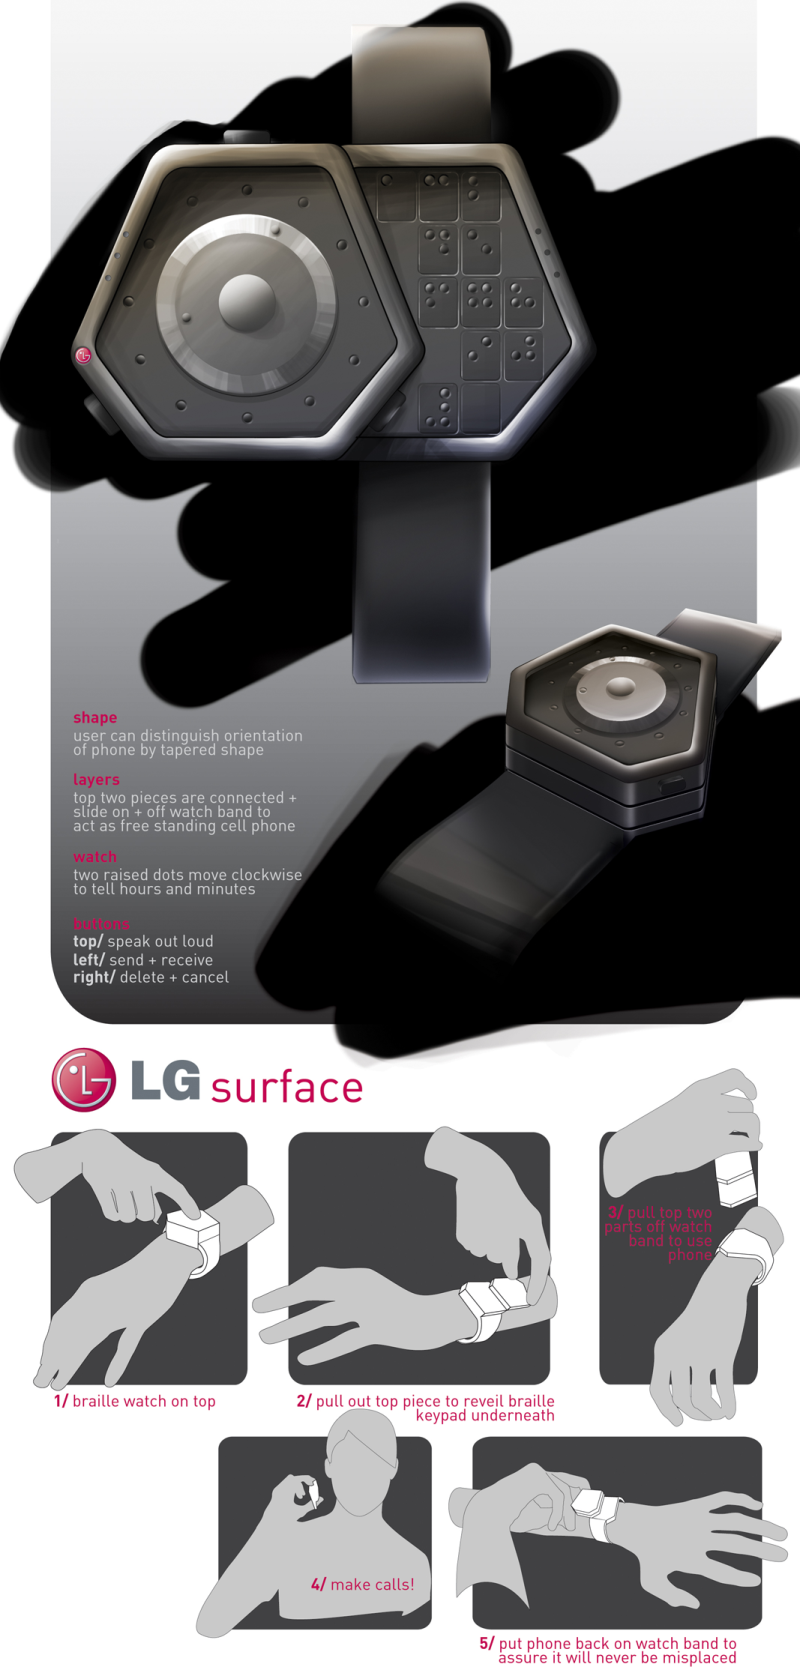 LG Surface, a Watch Phone for the Blind, Featuring a Braille Keypad